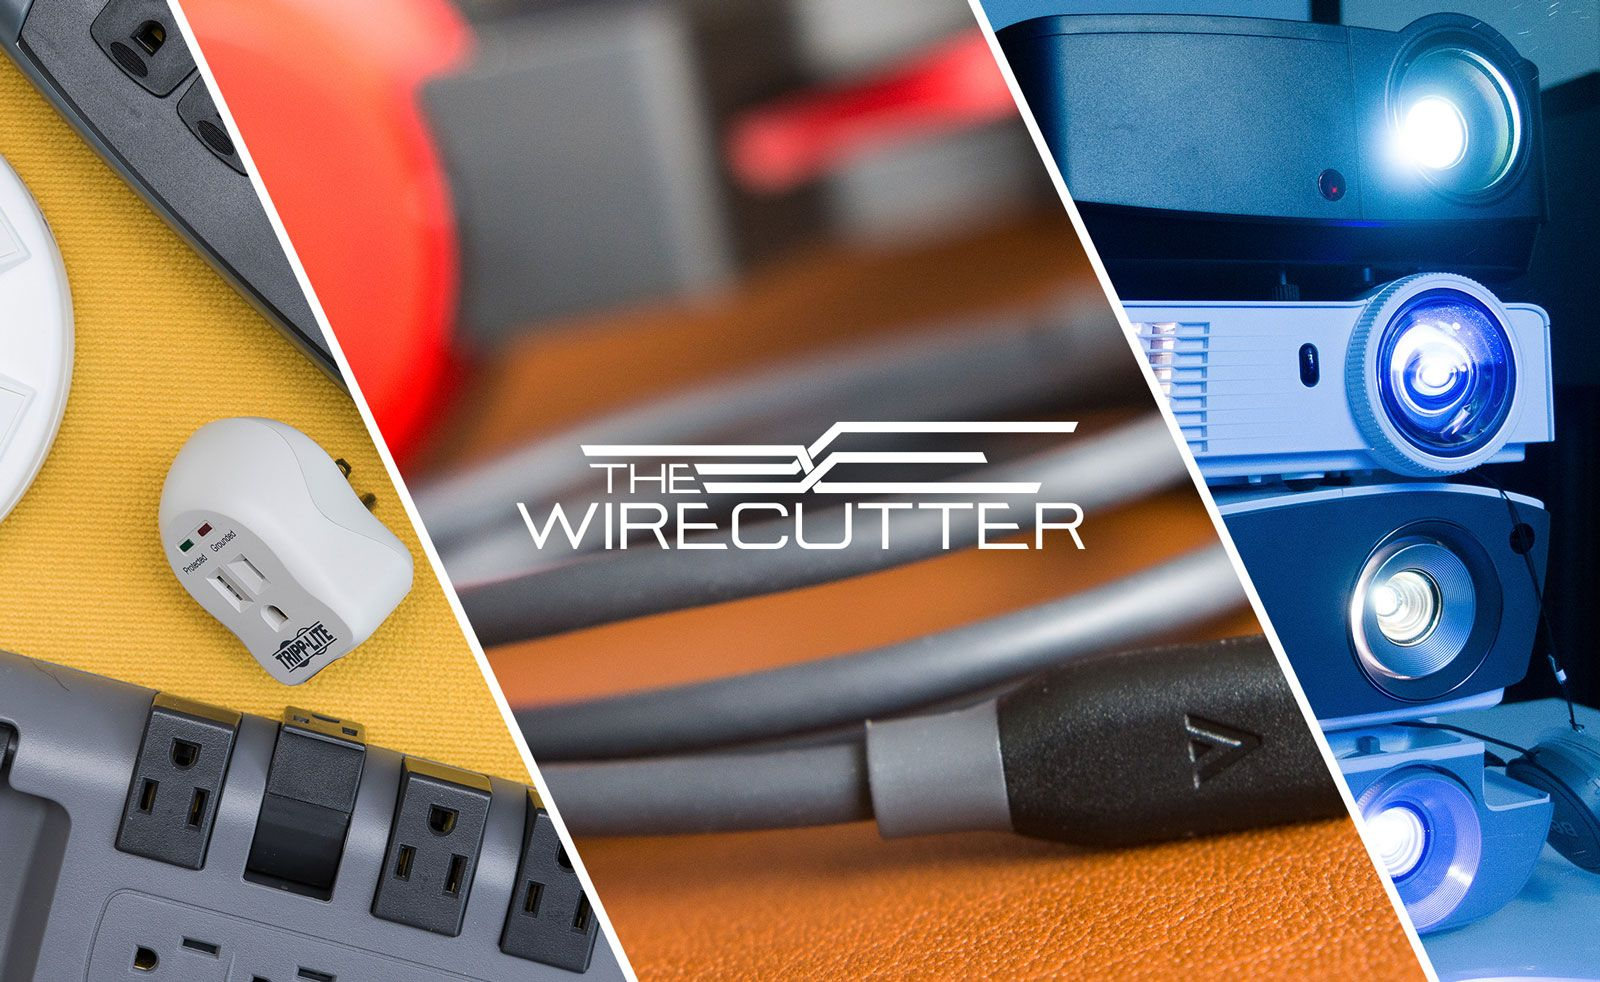 Wirecutter's best deals Save over 450 on a Dell XPS 13